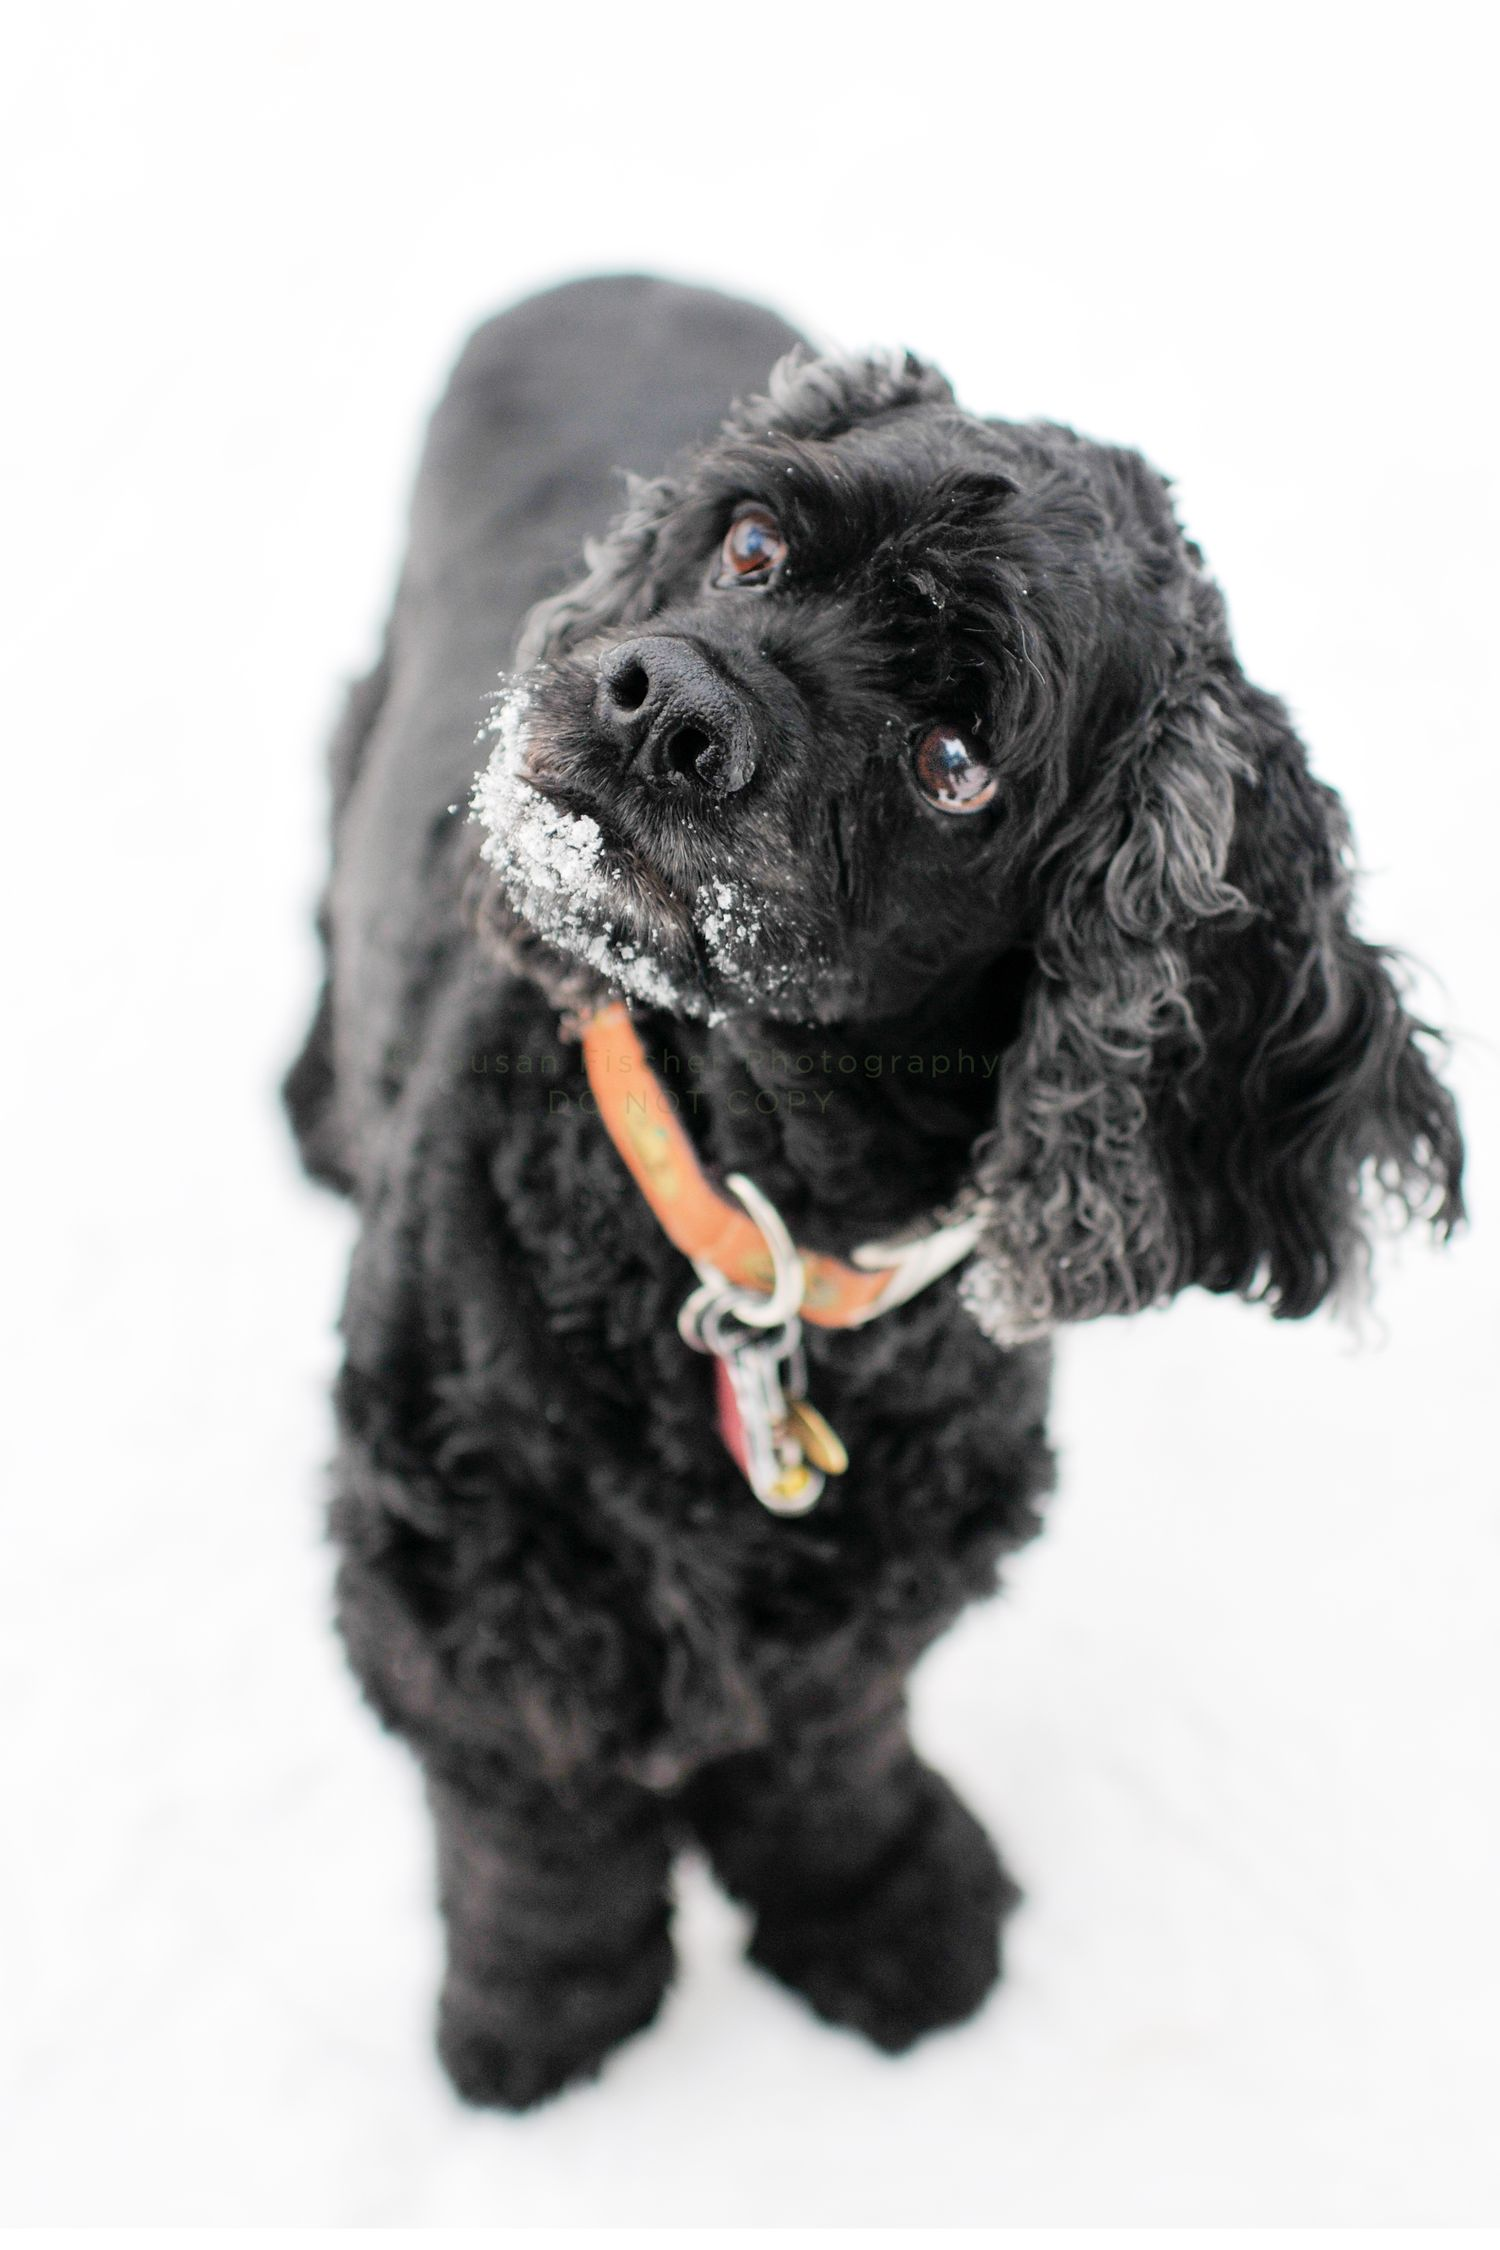 dog, dog in snow, black dog, cocker spaniel